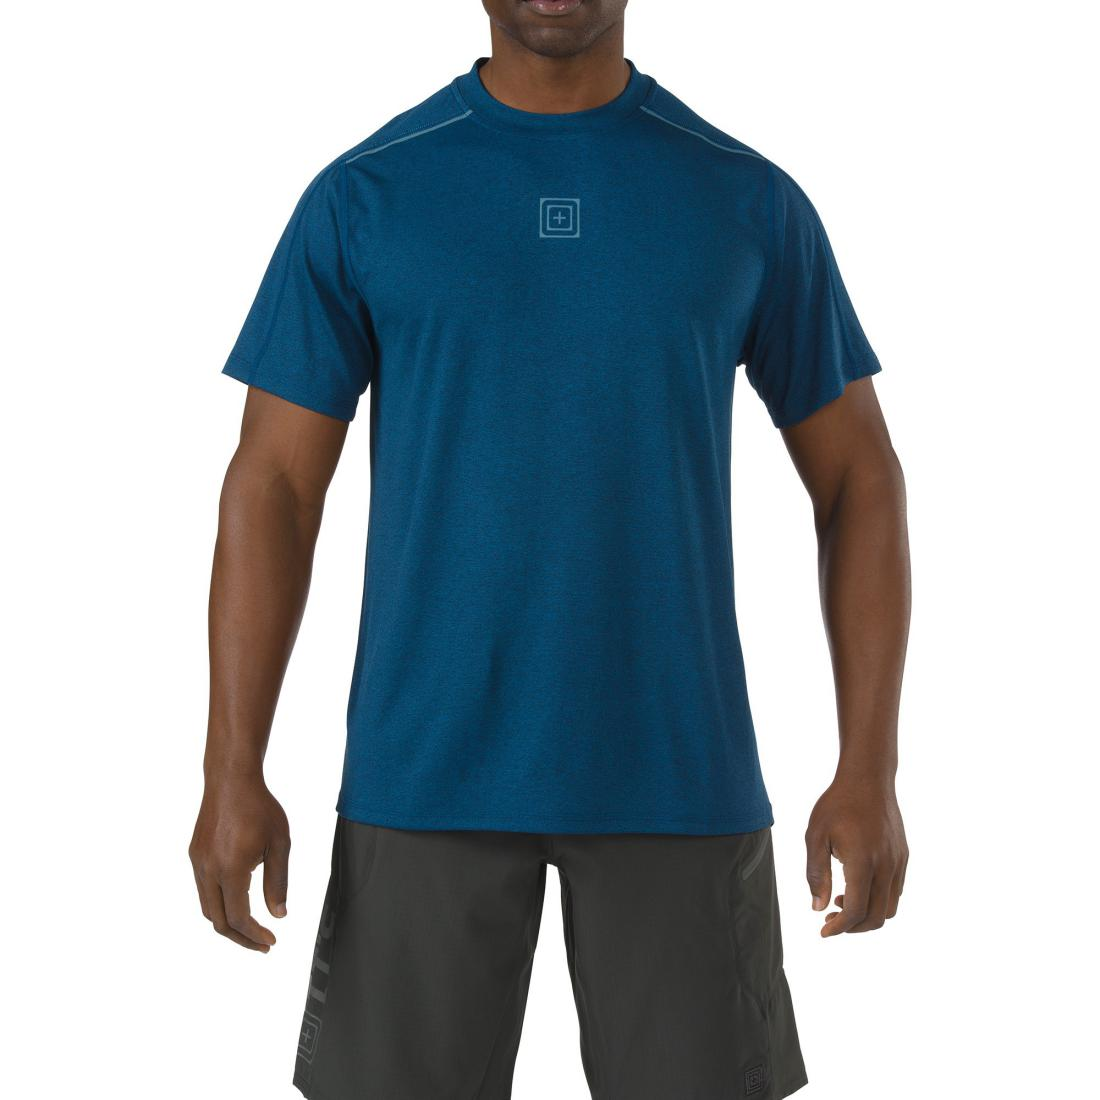 5.11 Tactical 82105 Men Recon Triad Top - Short Sleeve